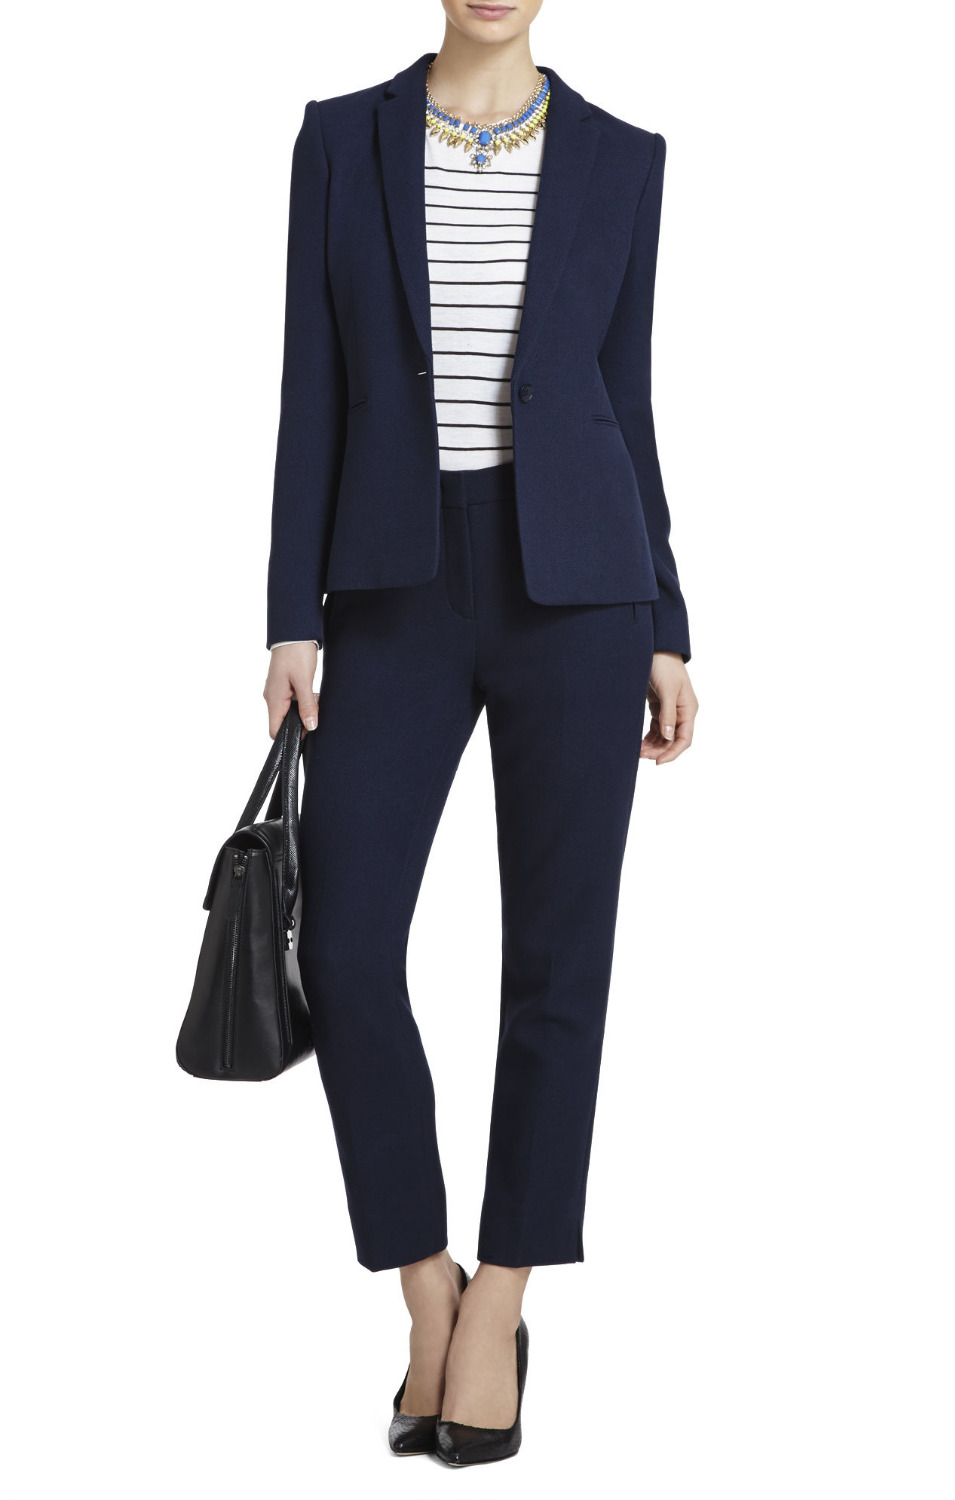 Formal Navy Suit Women Promotion-Shop for Promotional Formal Navy ...